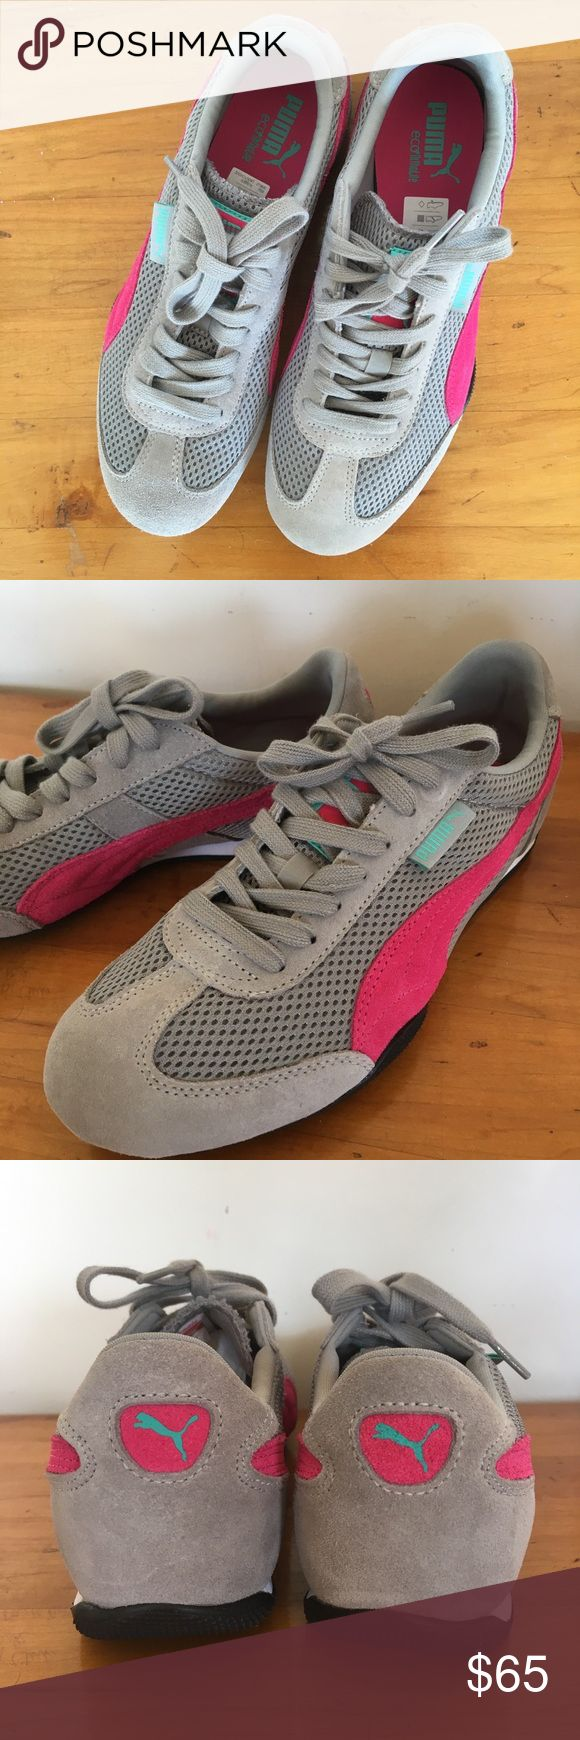 Puma Women's Runners Puma Women's Runners. These are brand new and have never been worn and come with the original box. Puma Shoes Sneakers